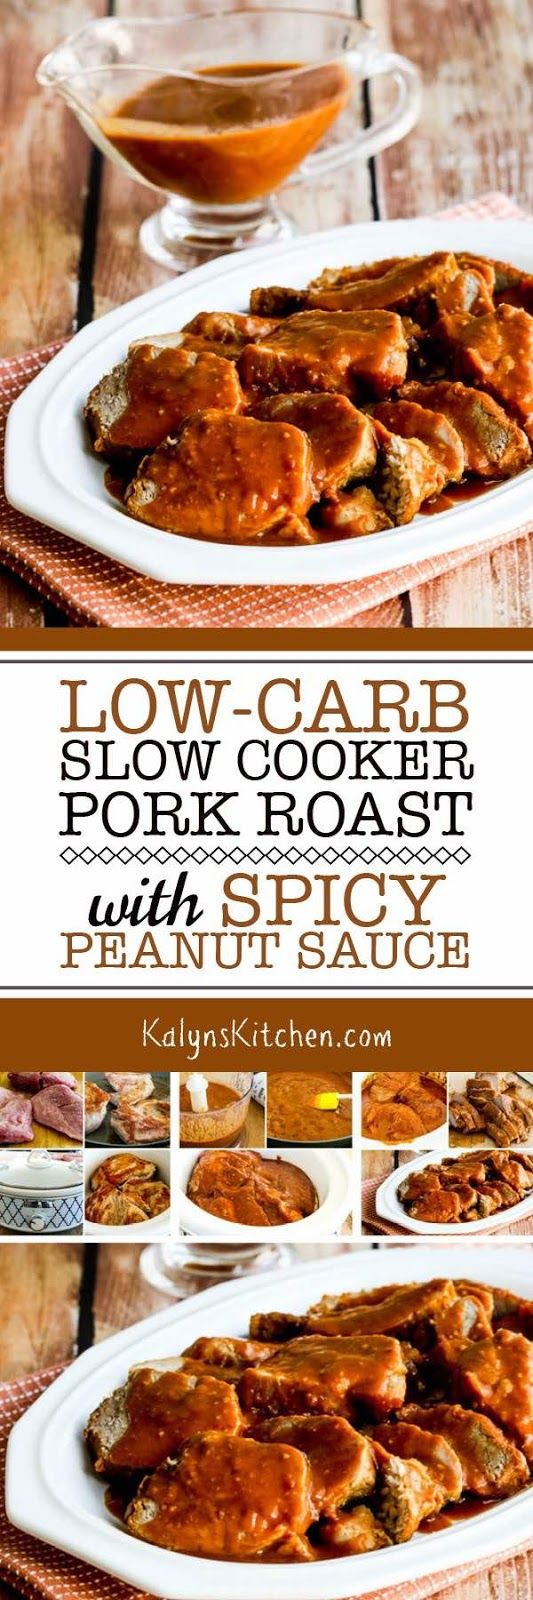 I love this Low-Carb Slow Cooker Pork Roast with Spicy Peanut Sauce, but this recipe also has instructions for making this tasty dish in the Instant Pot or electric pressure cooker if you prefer that. Either way you make it, with approved ingredients this recipe is low-carb, Keto, low-glycemic, gluten-free, dairy-free, and South Beach Diet Friendly. [found on KalynsKitchen.com] #SlowCookerPork #PressureCookerPork #InstantPotPork #PorkwithPeanutSauce #PeanutSauce